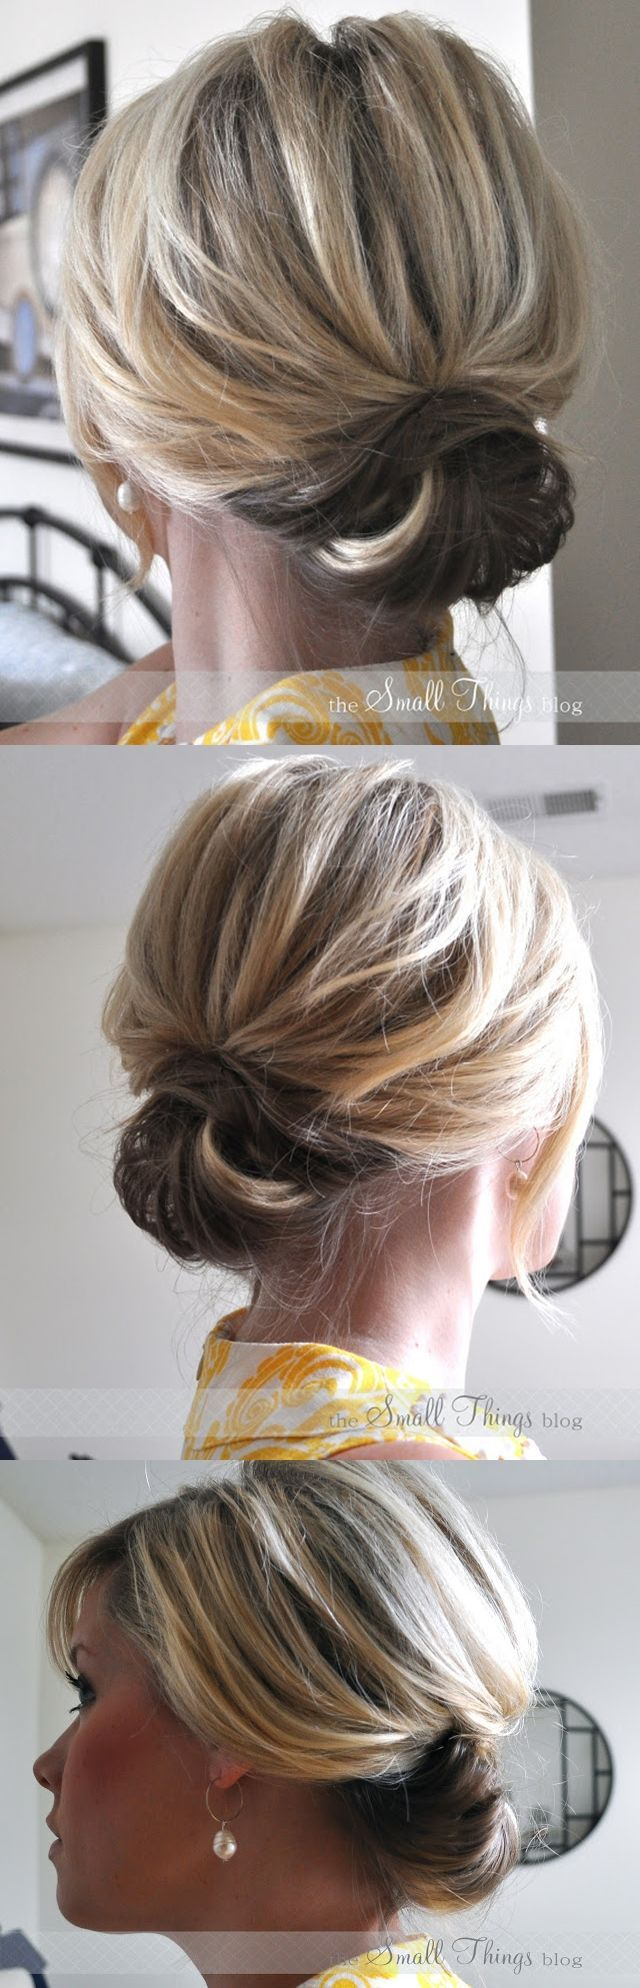 Best Updos Short Hair Images On Pinterest Hairstyle Ideas - Updos for short hair wedding